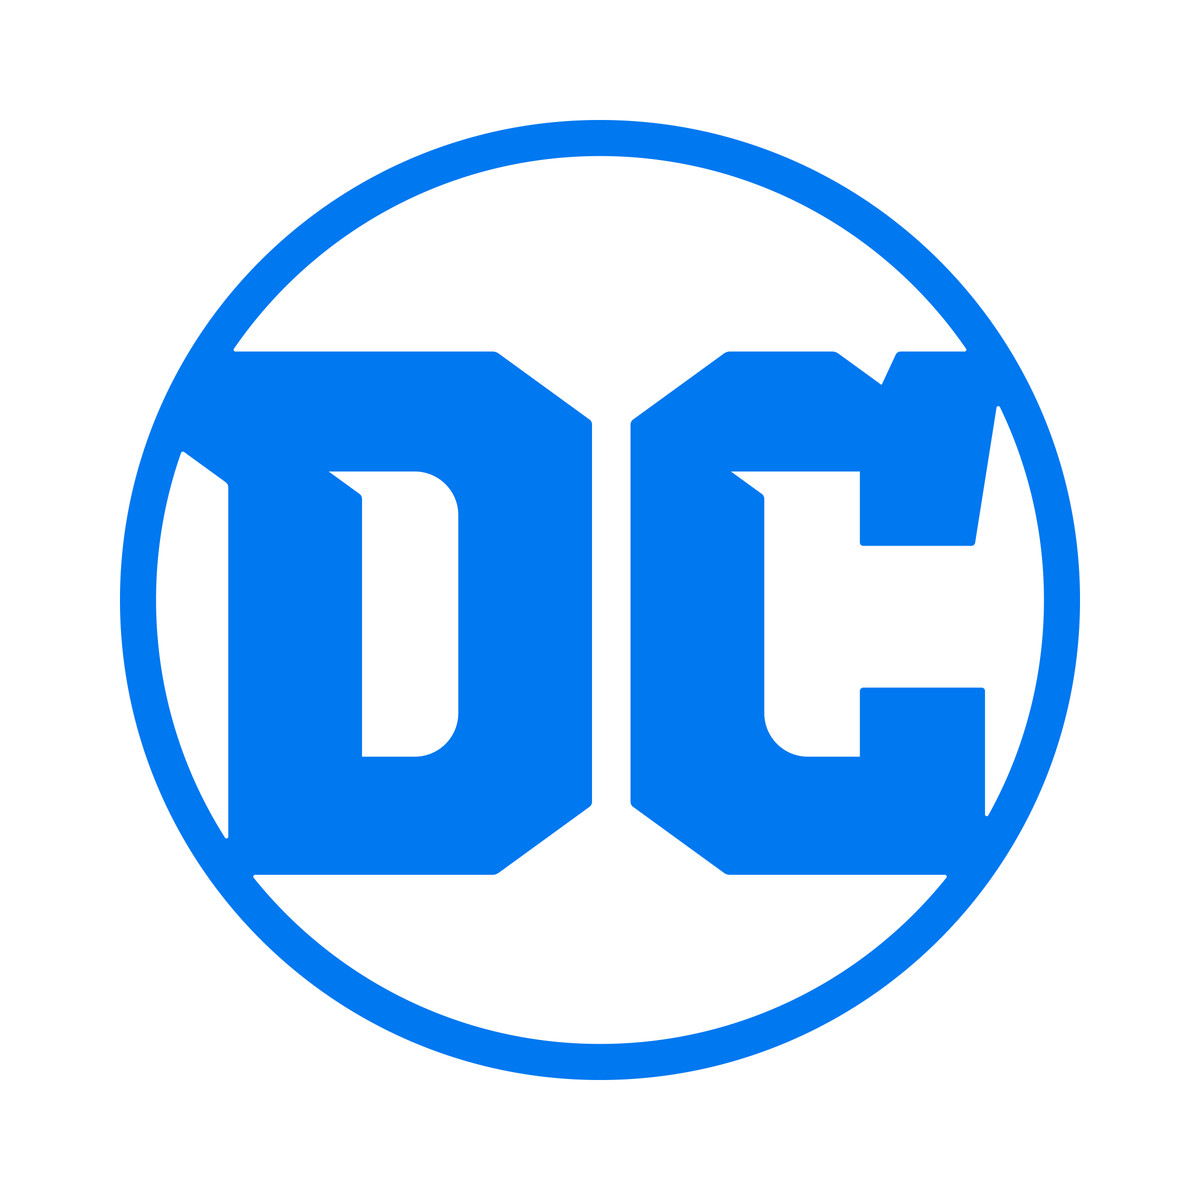 DC Entertainment Introduces New Identity For DC Brand - Dc Comics Logo PNG